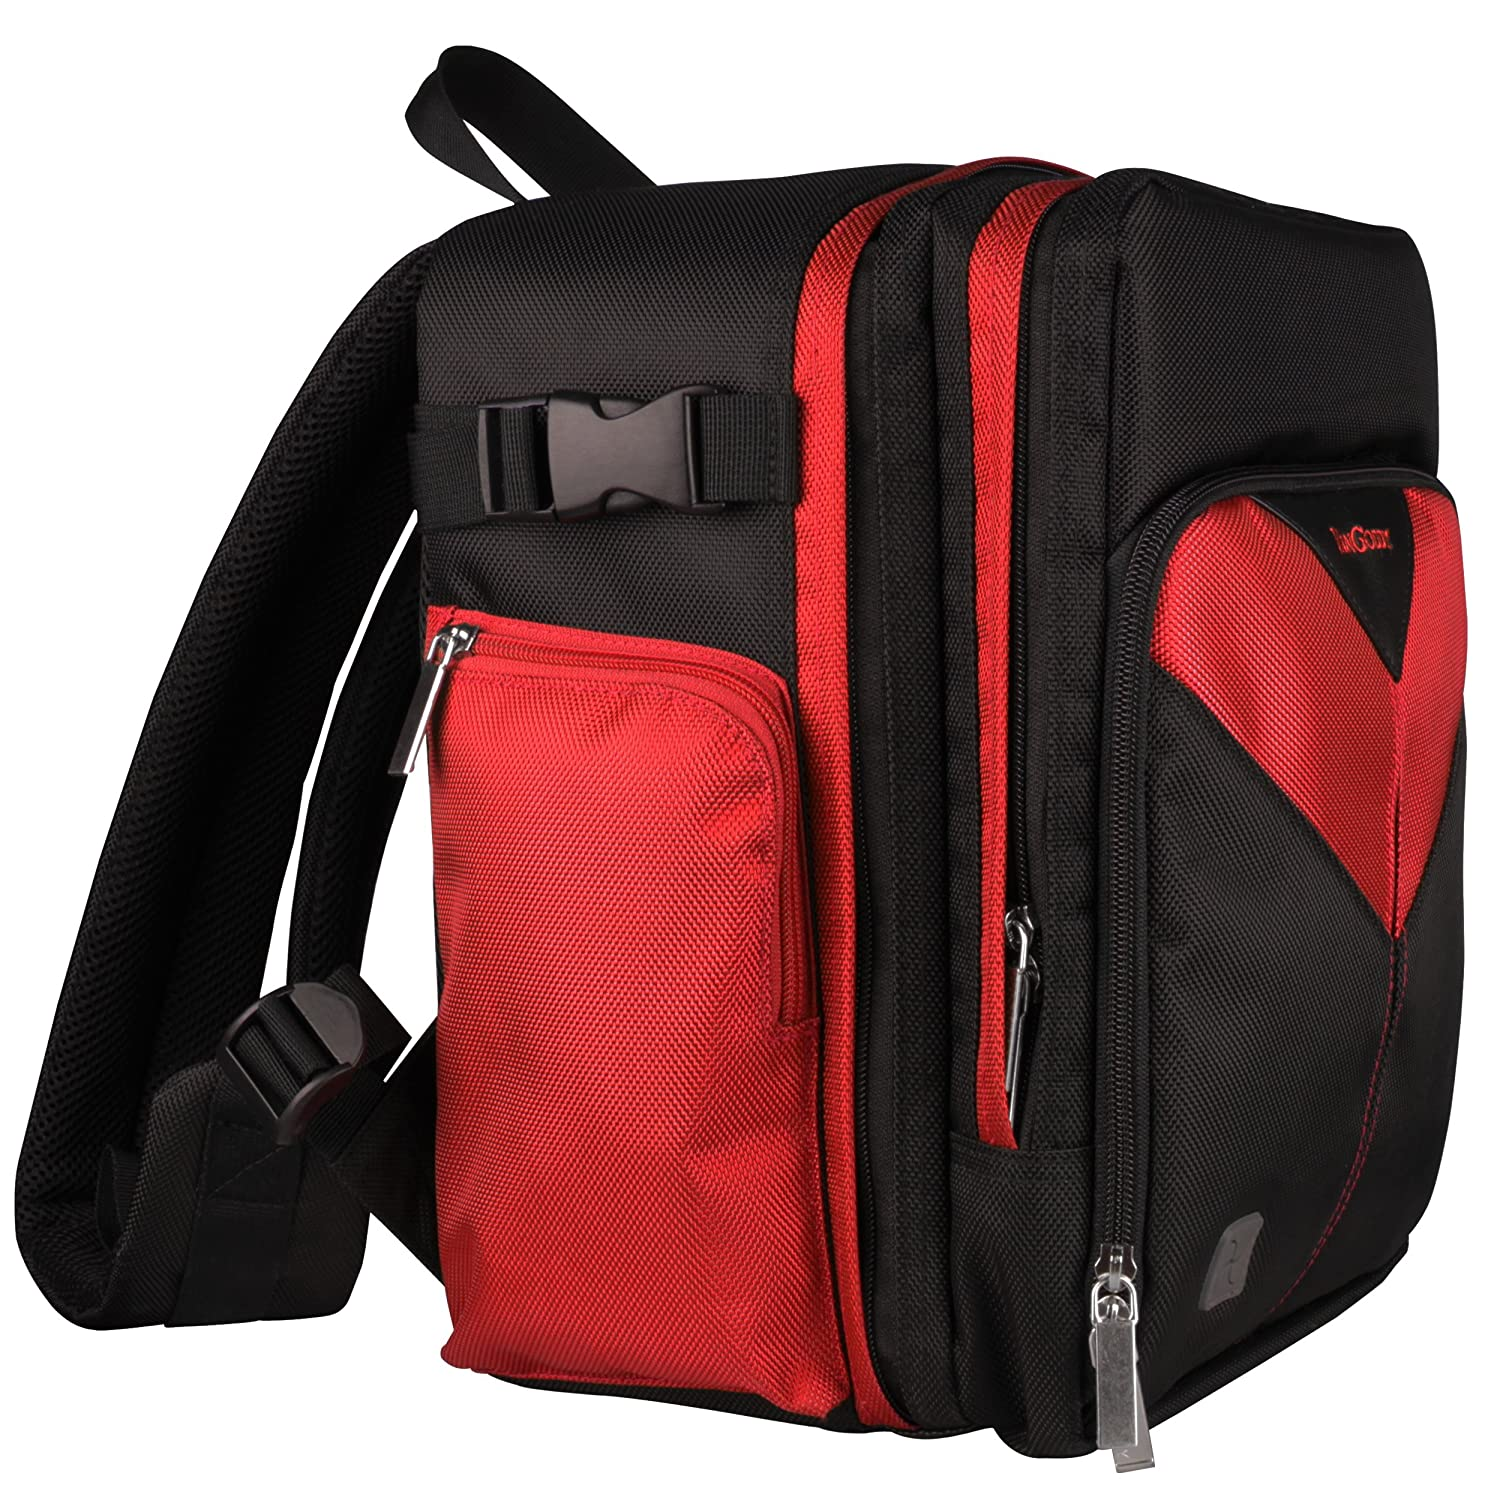 SpartaバックパックProtective Carrying Bag for Nikon d1、d1h、d1 X、d200、d100、d2h、d2hs、d2 X、d2 X Sカメラ B00IX59CNK